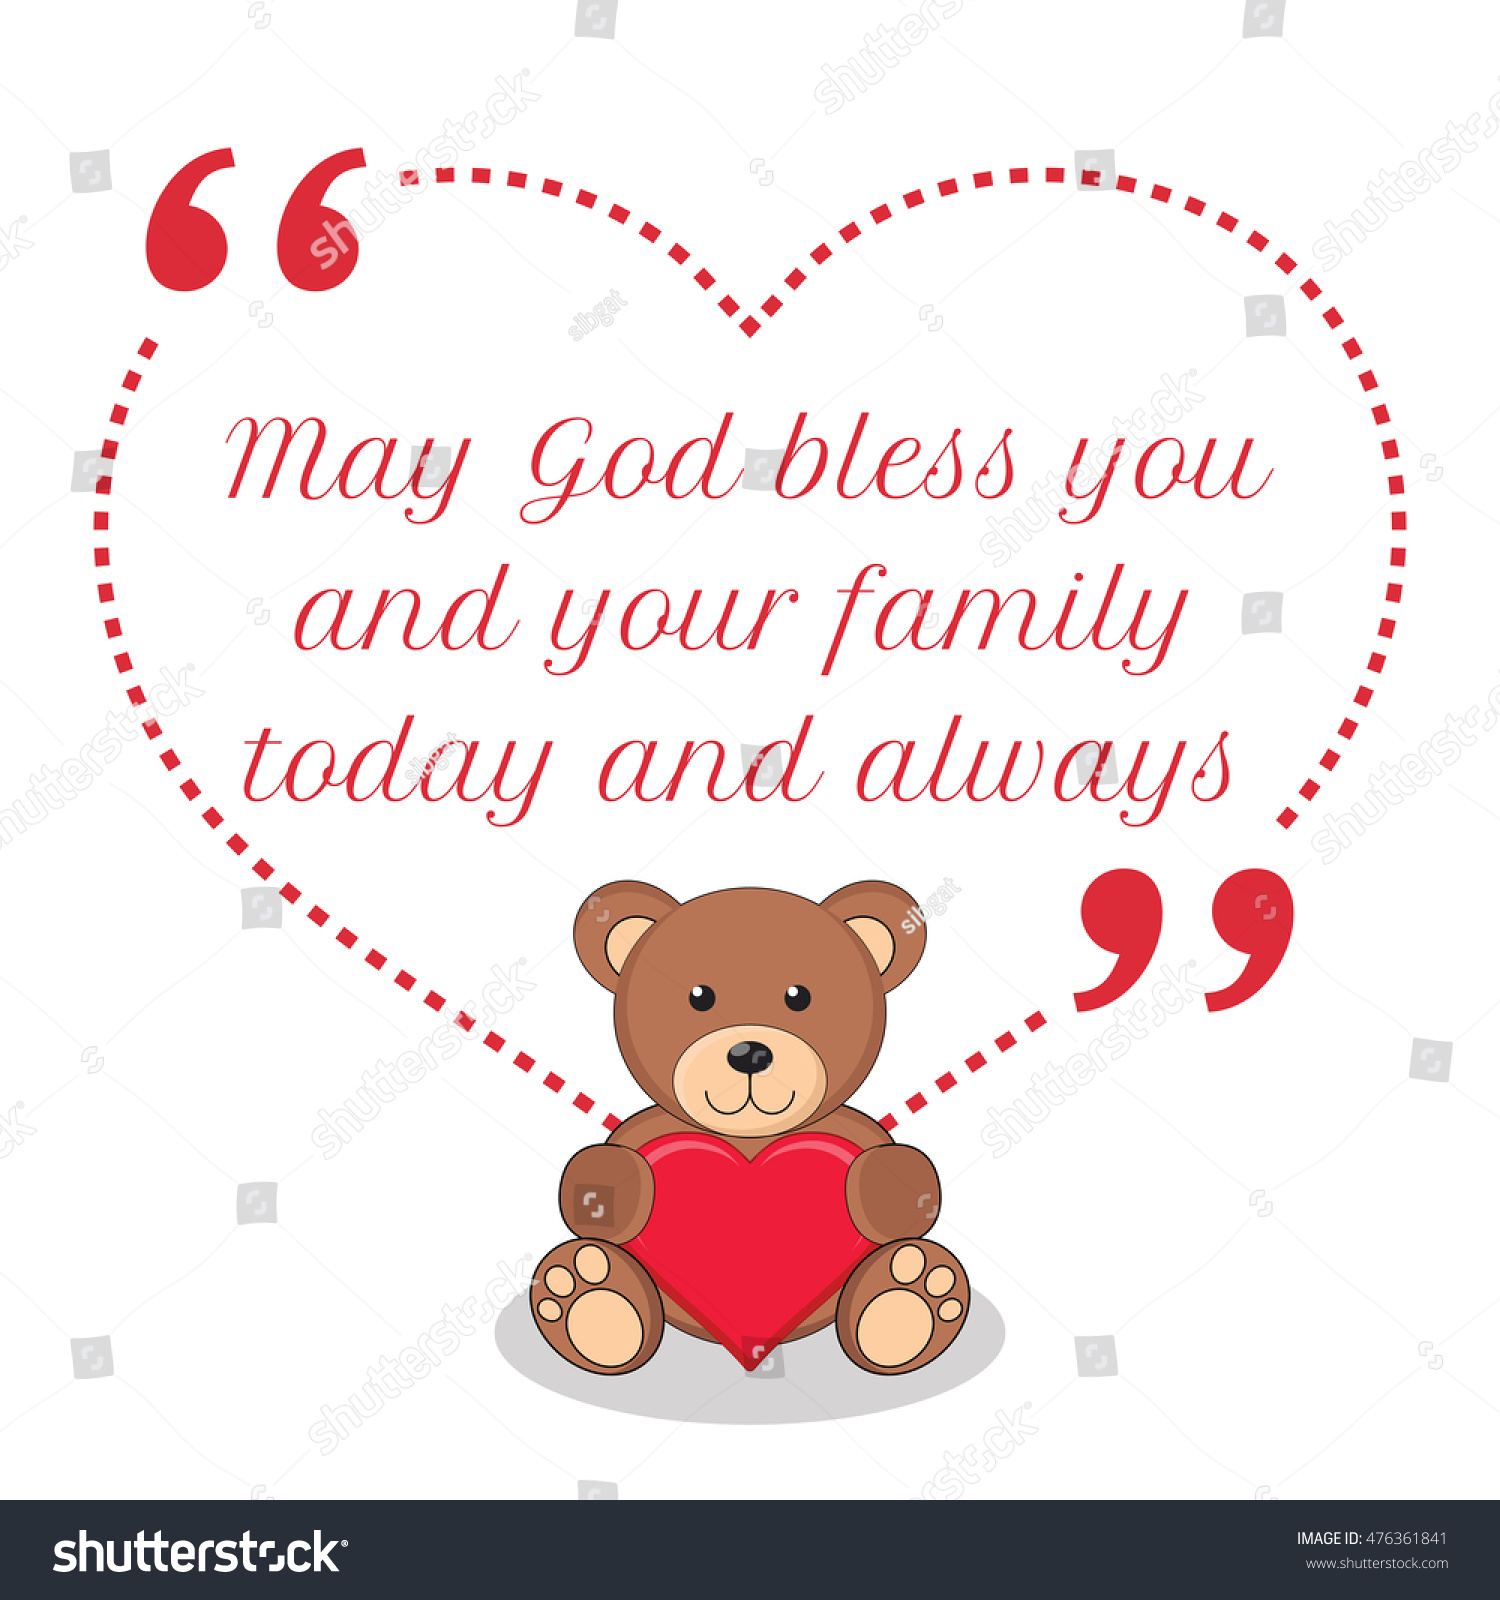 Family Love Quotes Images Inspirational Love Quote May God Bless Stock Illustration